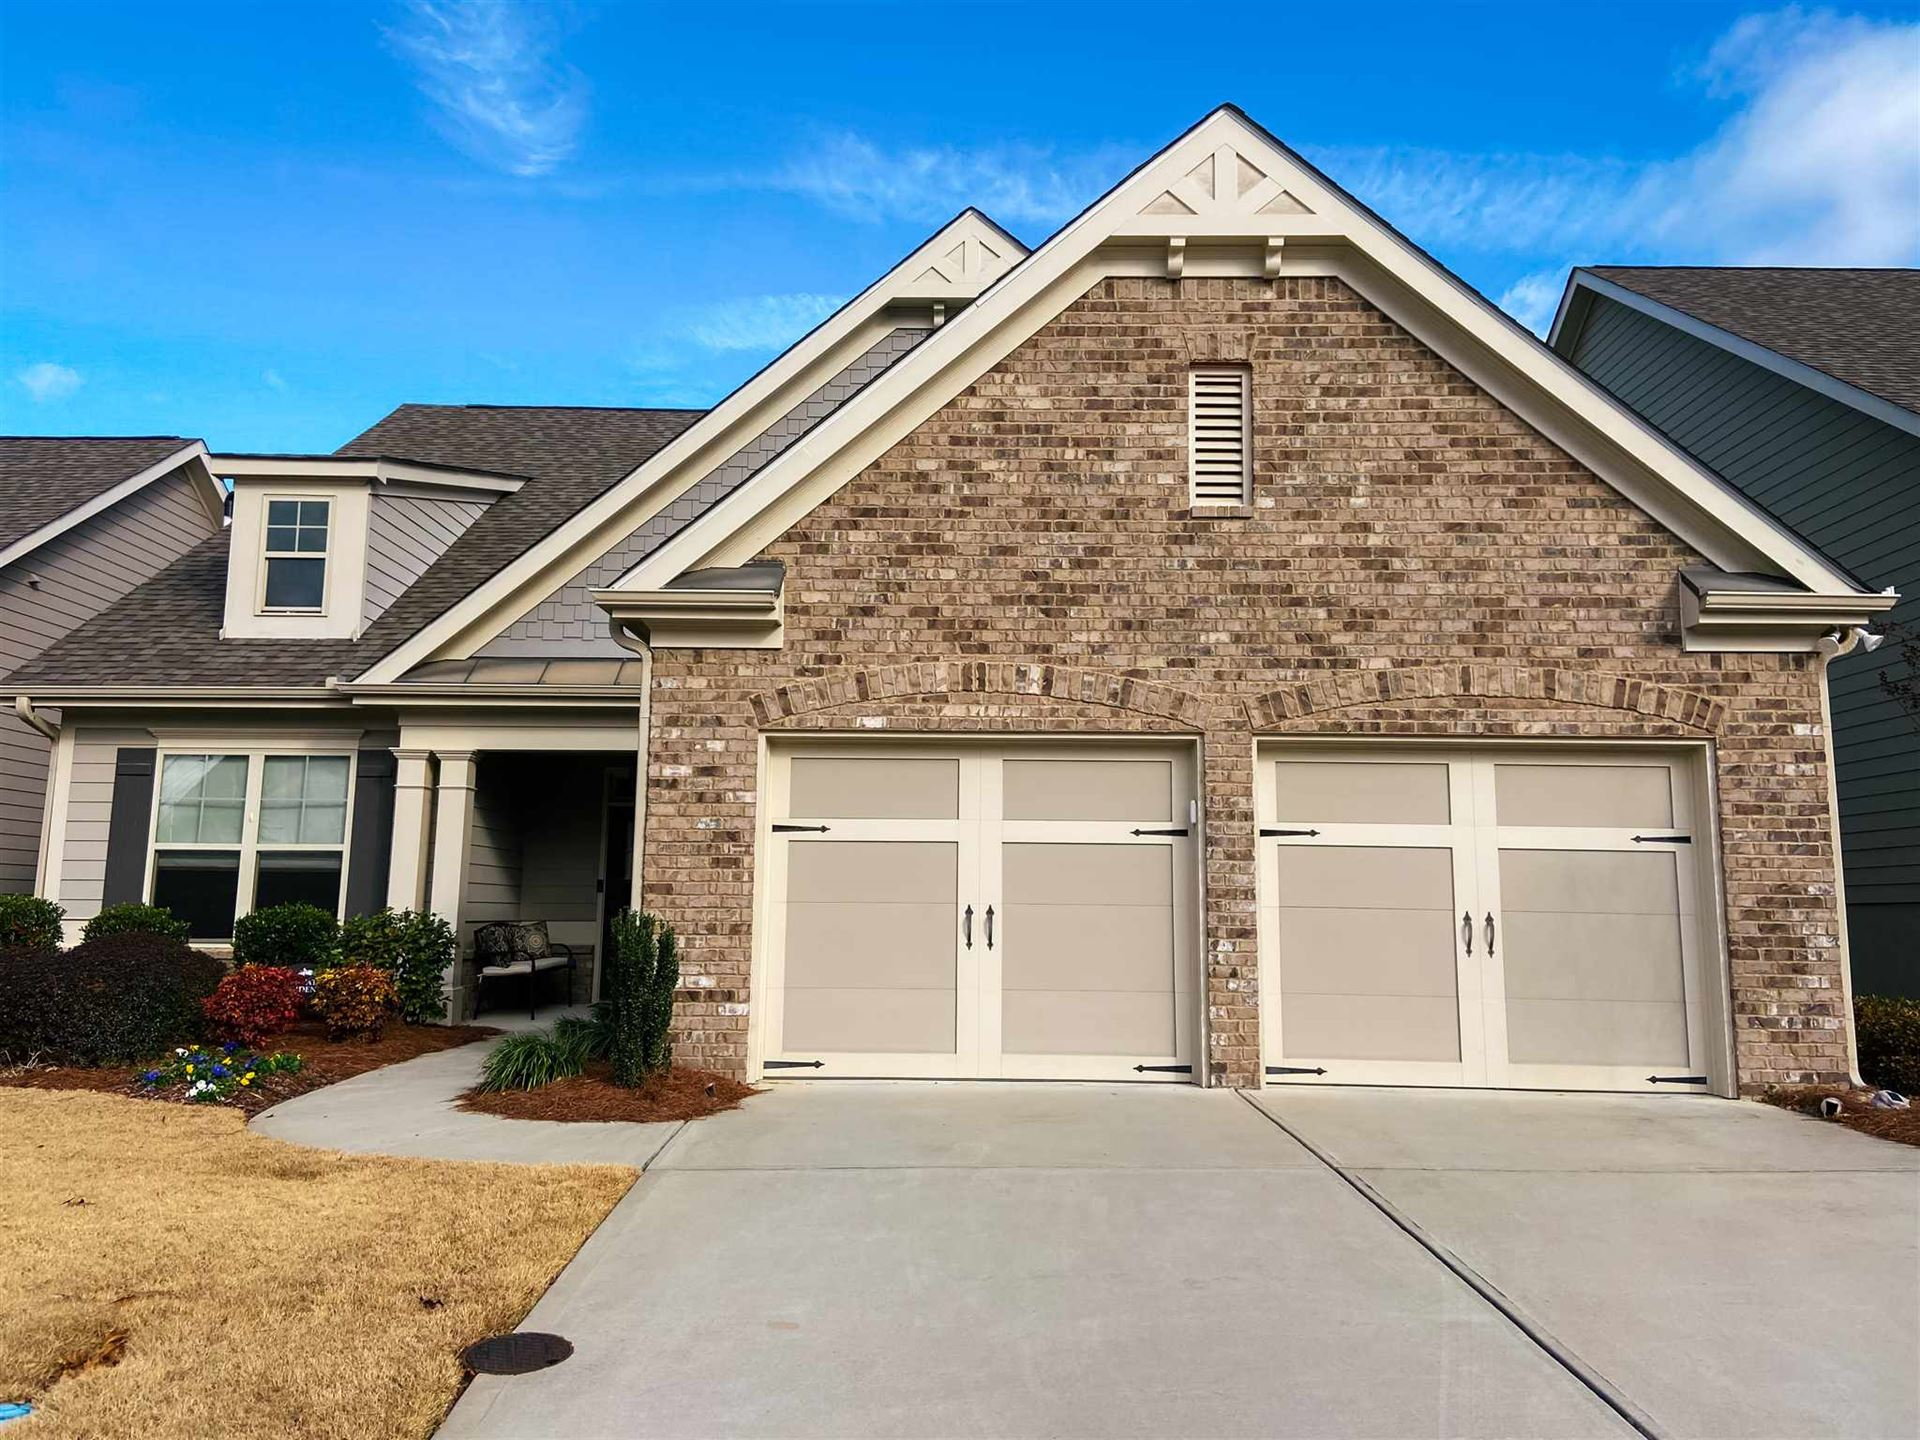 6914 Hopscotch Ct, Flowery Branch, GA 30542 - MLS#: 8907461